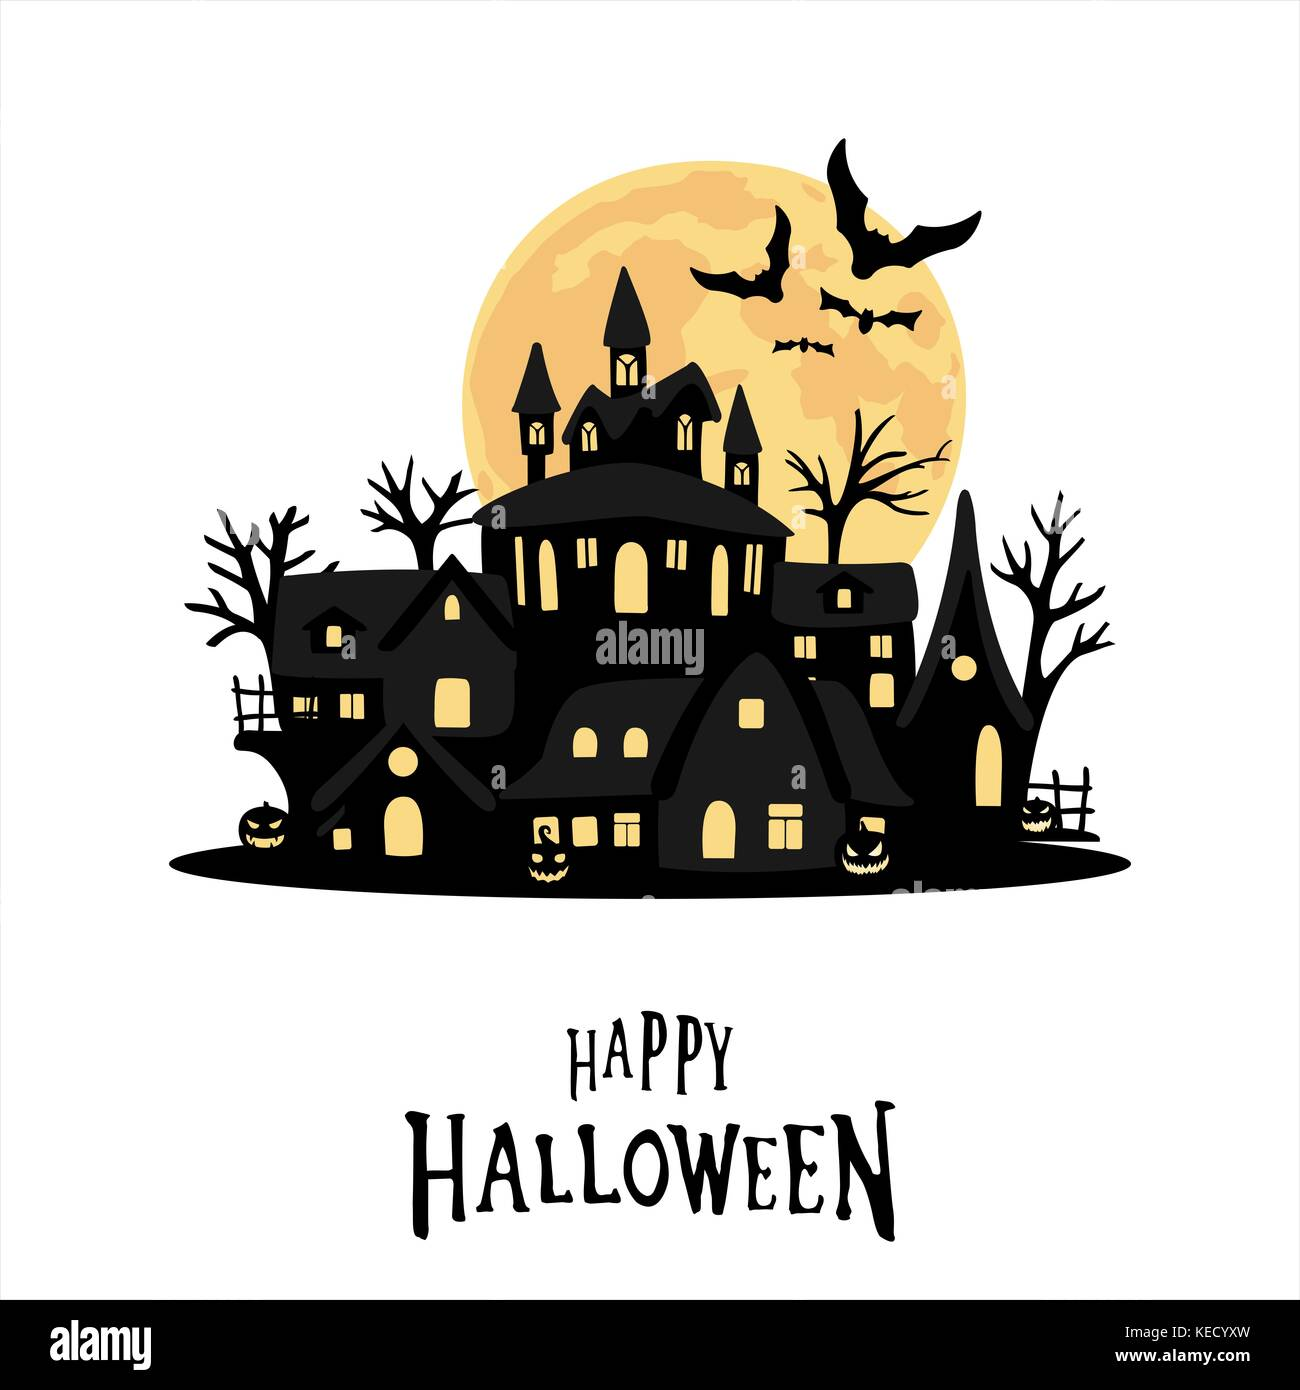 halloween silhouette card and background - Stock Image